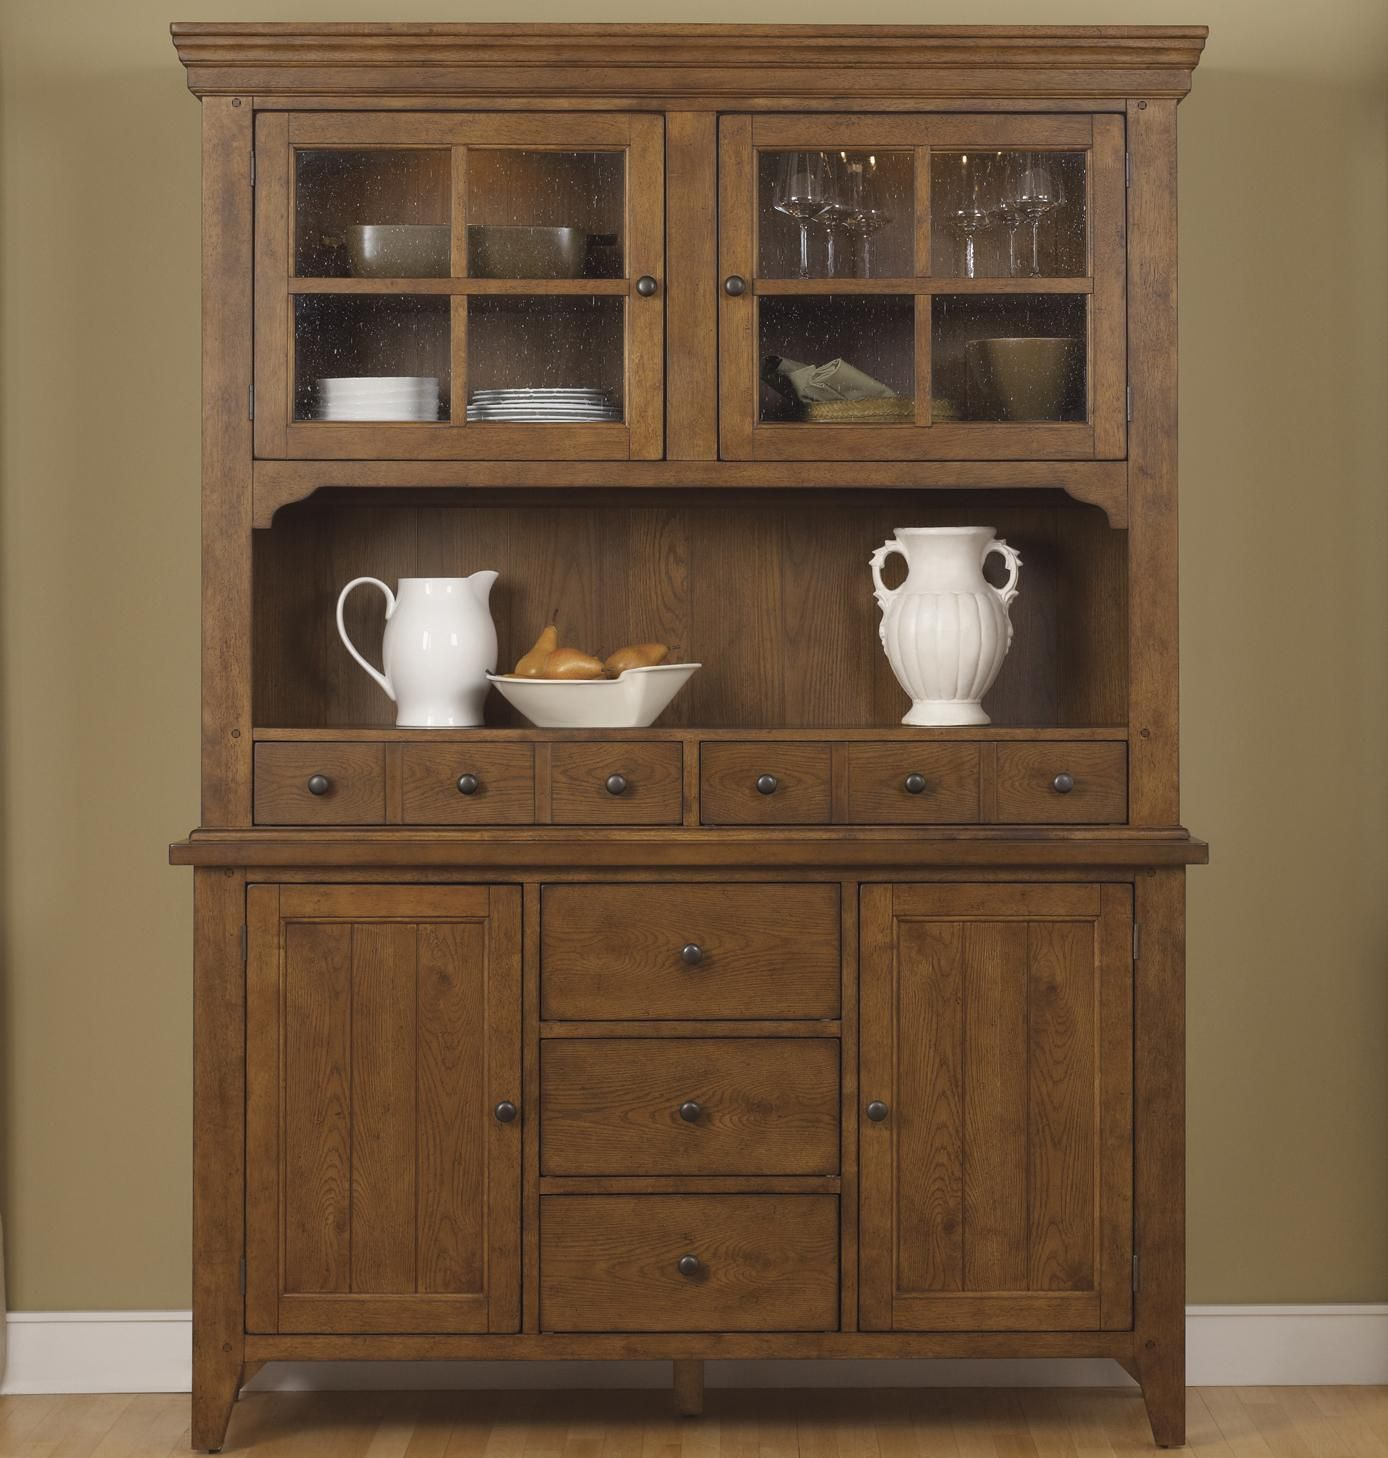 Hearthstone Mission Style Buffet With China Hutch By Liberty Furniture Dining Room CabinetsKitchen